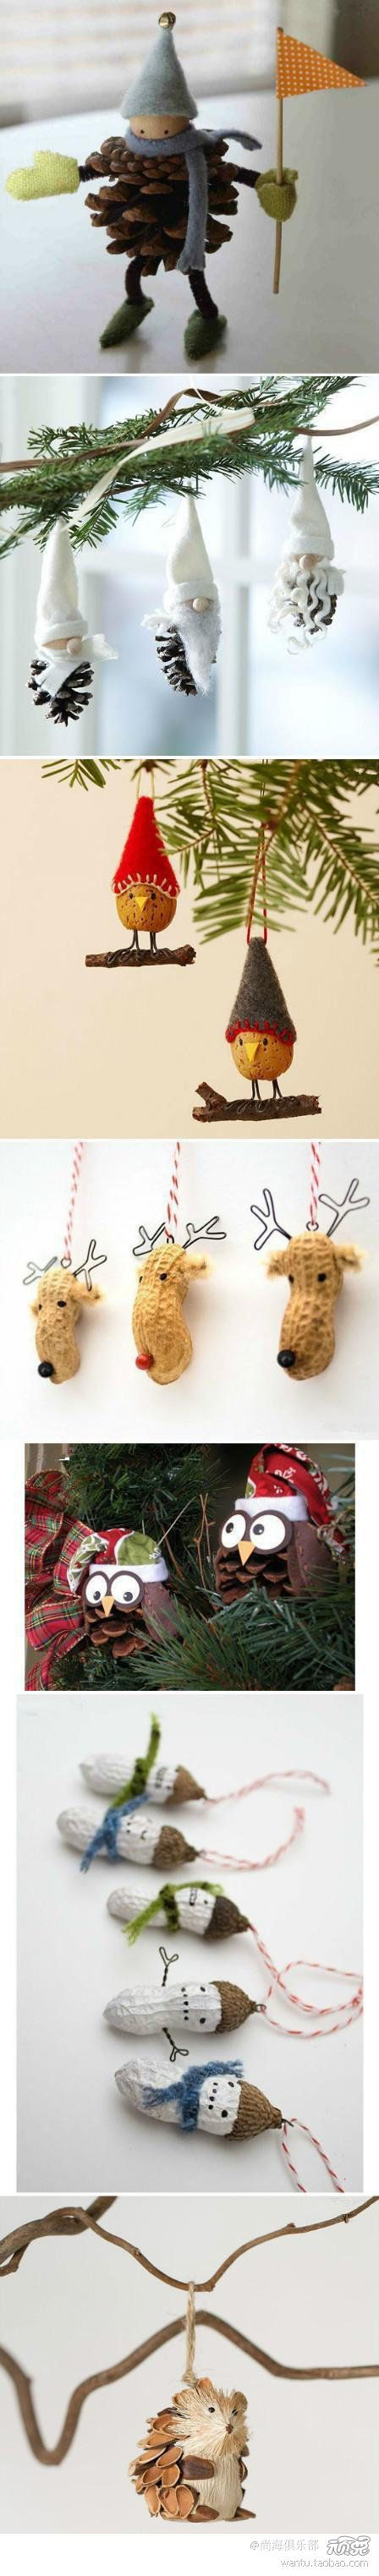 Christmas ornament catalogs - Christmas Diy Tree Ornaments From Pine Cones And Such Cute For Kids